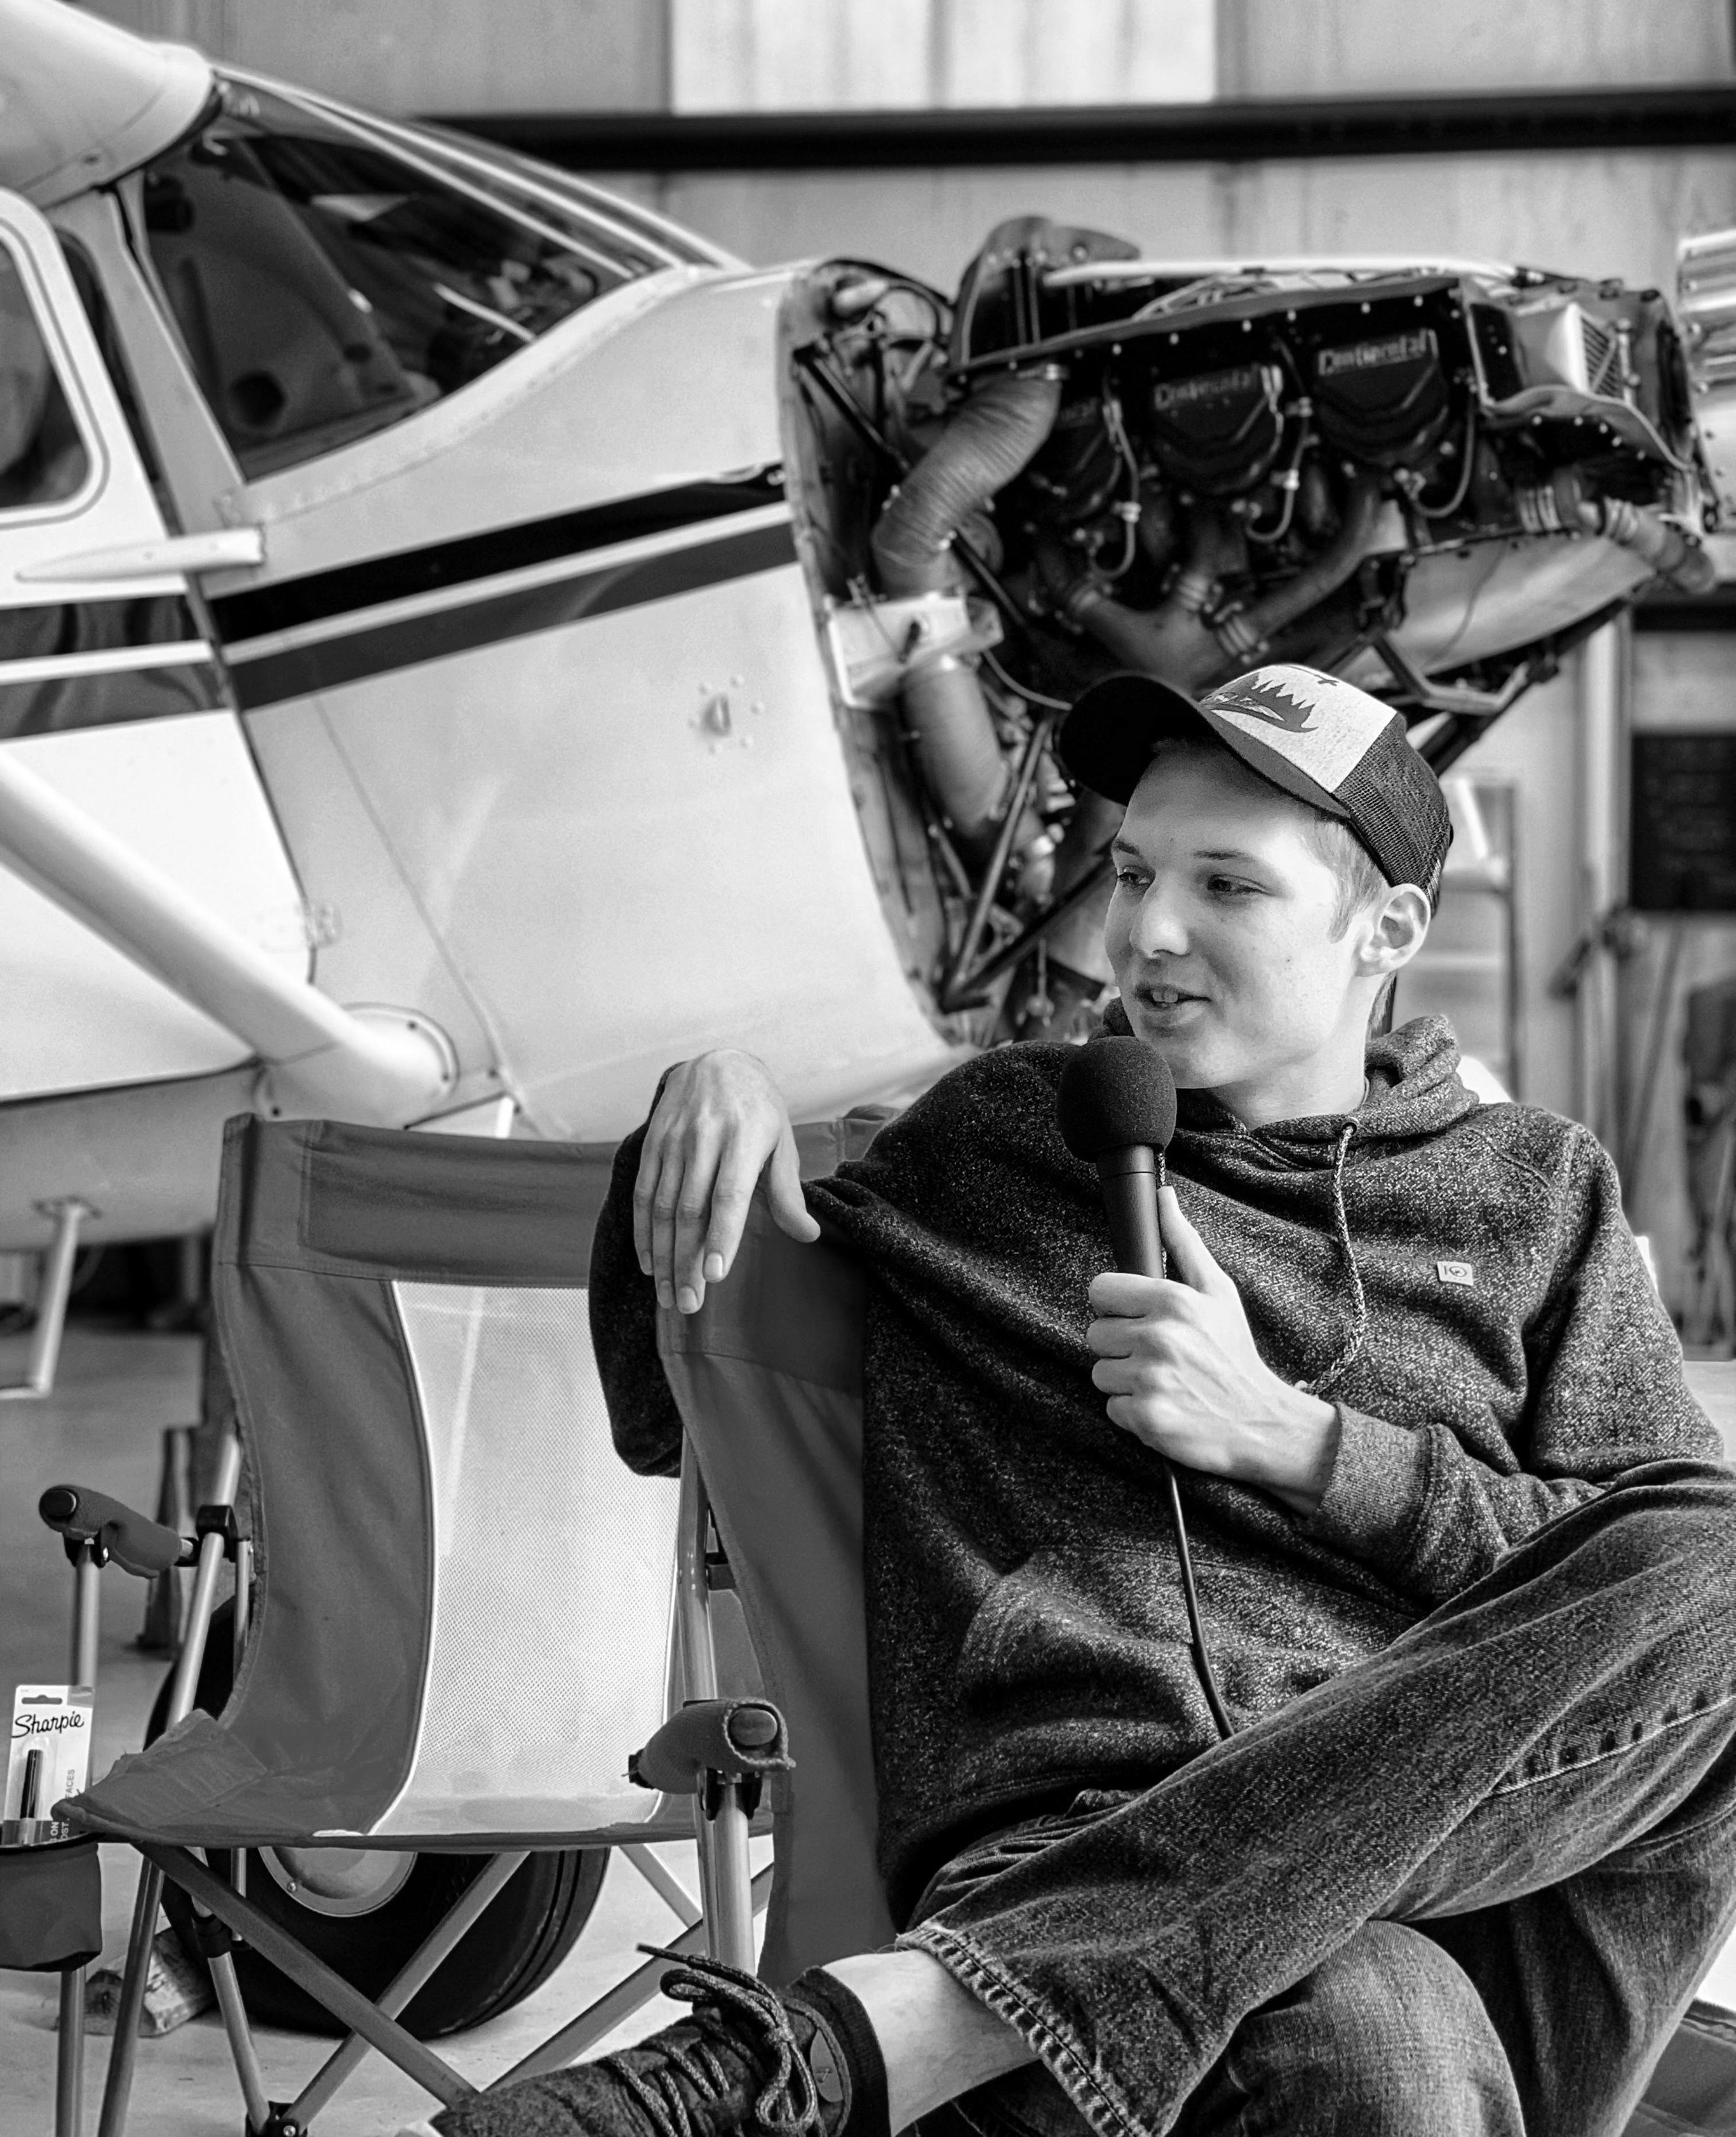 Season 1 Episode 12: Ryan Hunt: Flying Warbirds & Turning Wrenches  Ryan Hunt  Inside the hangar at Falcon Field (KFFC) with AOPA Flyby Crew member, Ryan Hunt. A 23 year old commercial pilot flying T6's, turning wrenches and creating his own legacy in aviation.